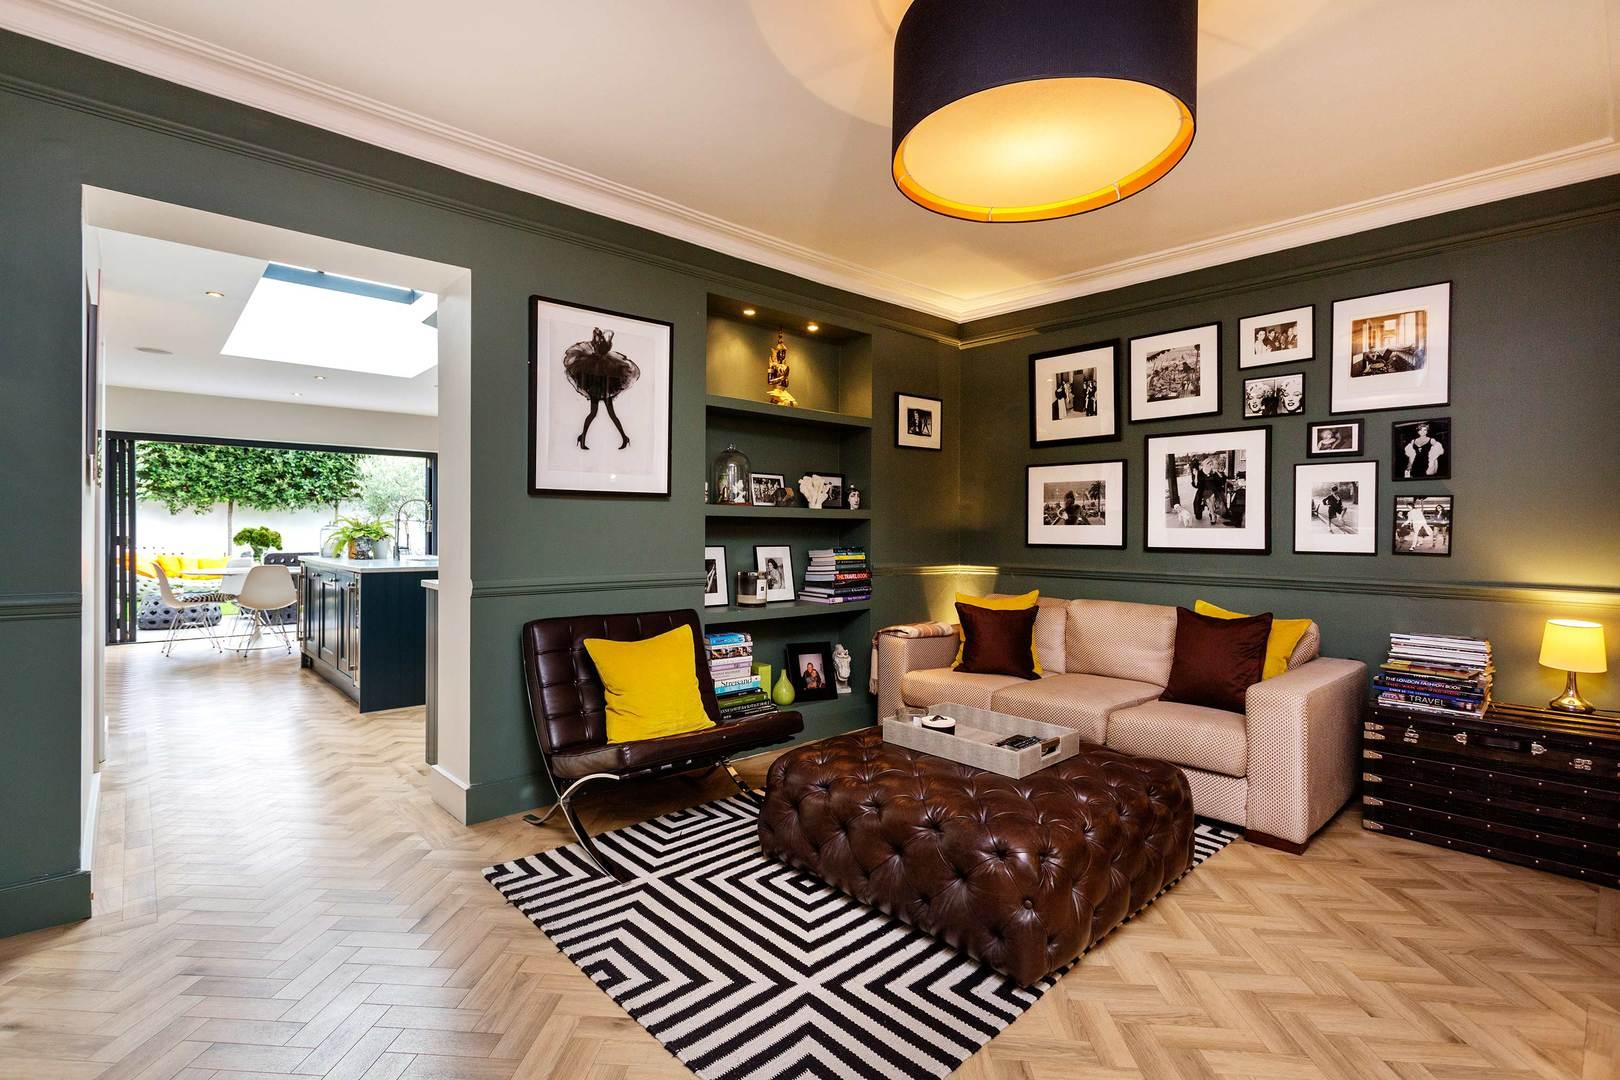 Property Image 1 - Exquisitely Designed Wandsworth House with Home Cinema